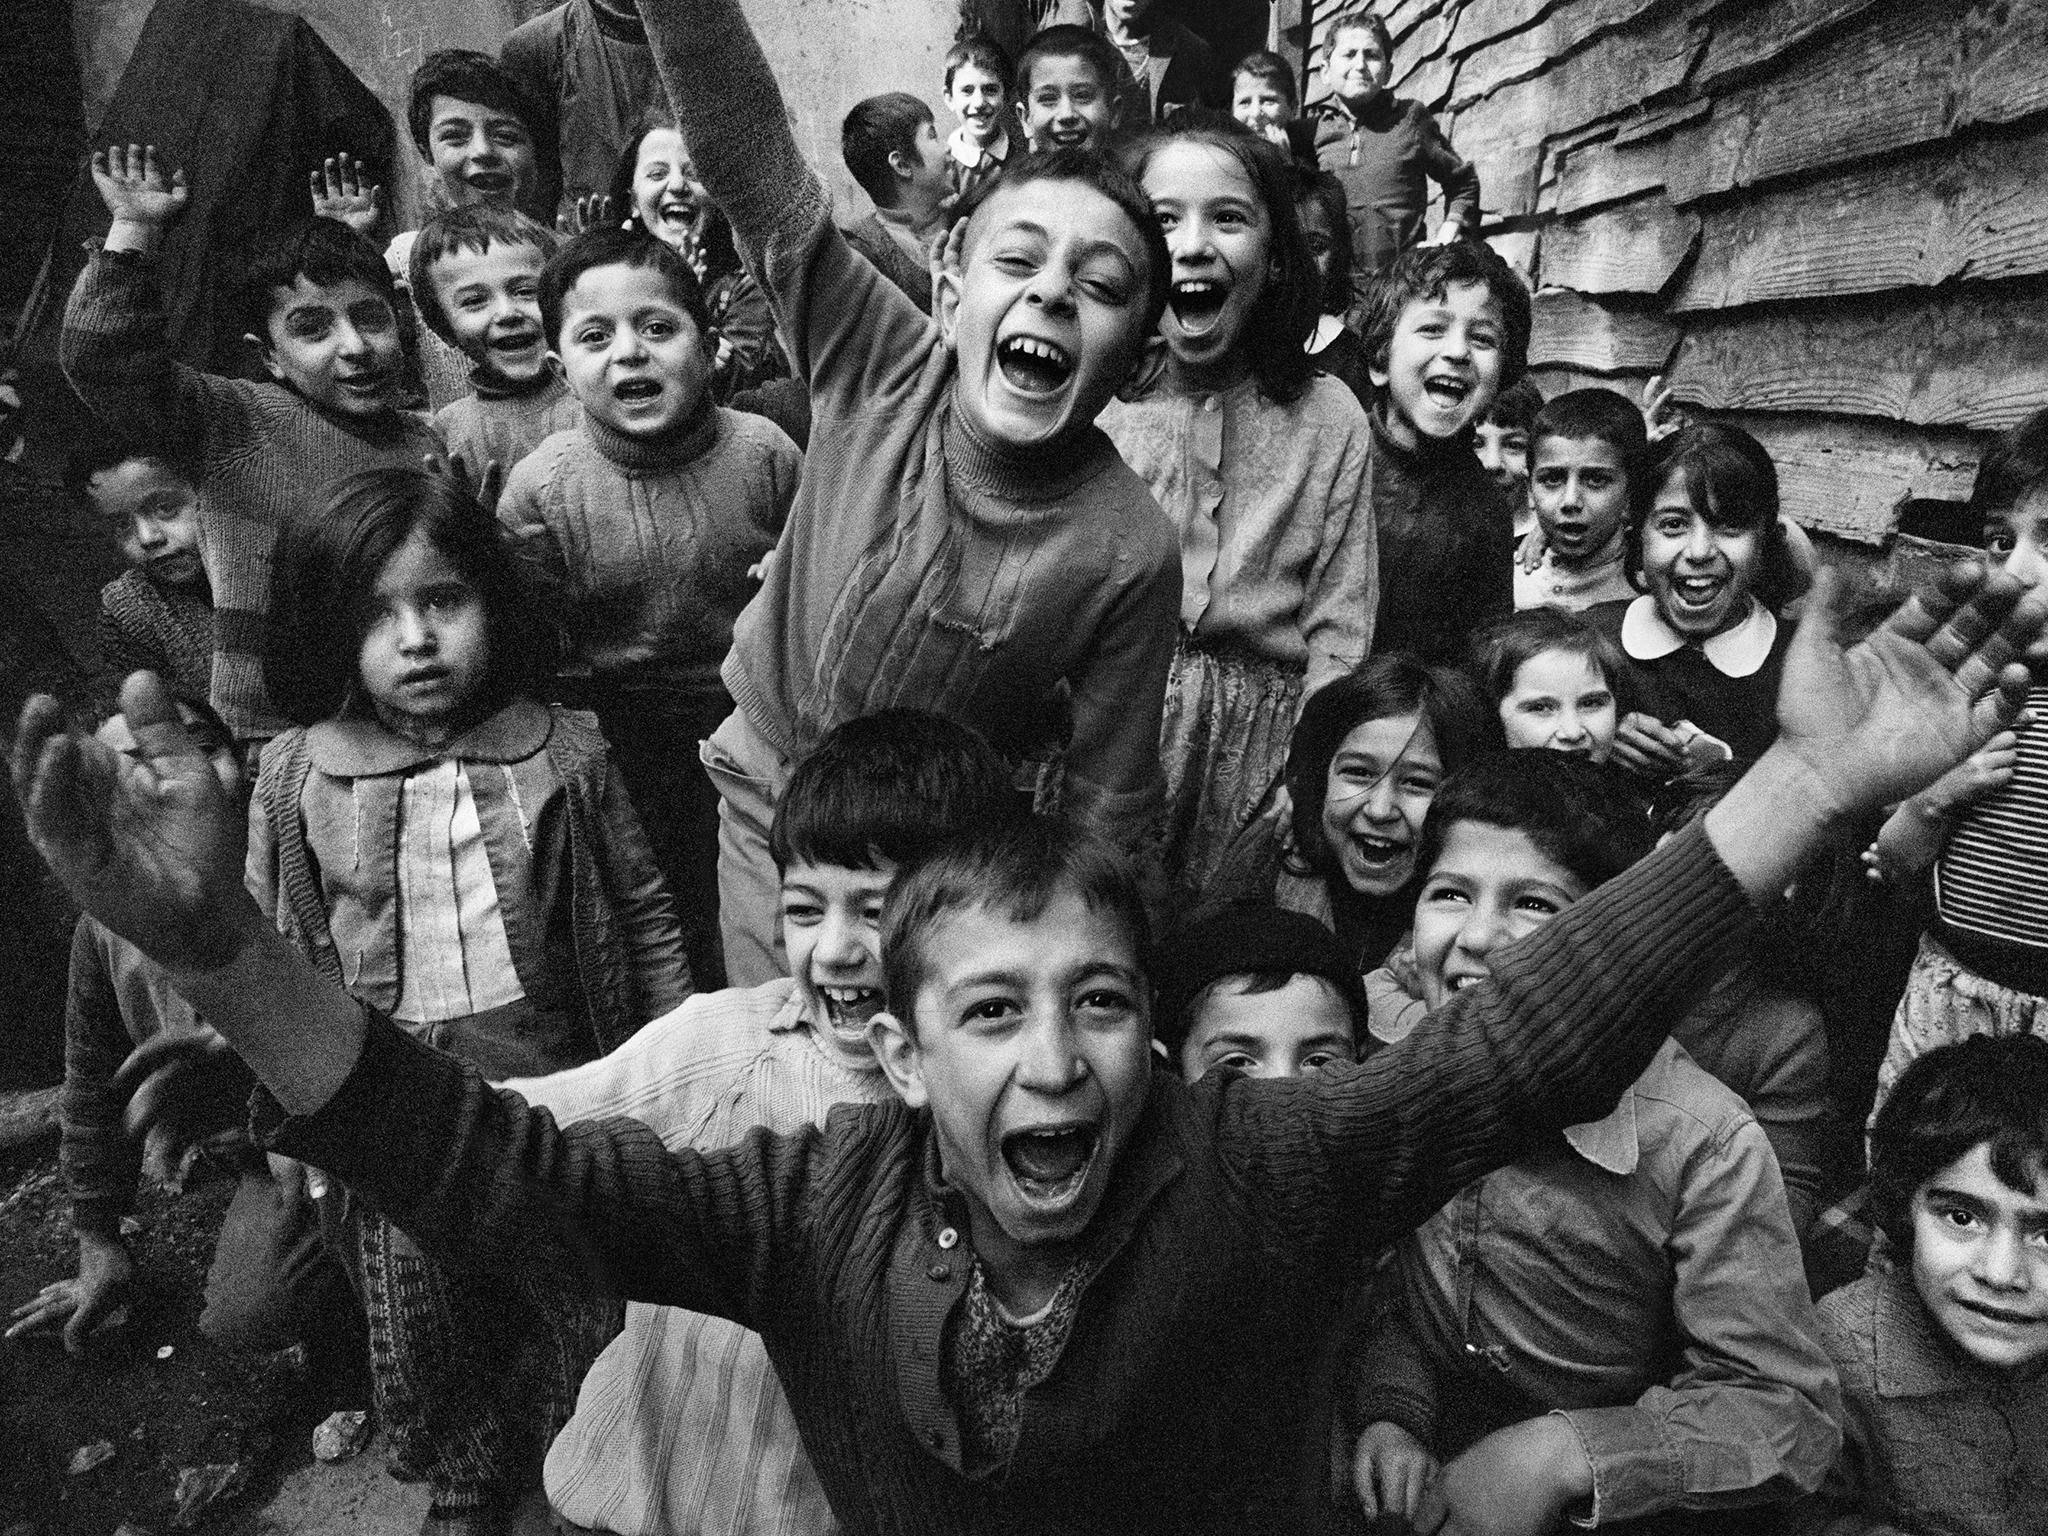 The Eye of Istanbul: Magical images from the lens of photojournalist Ara Güler